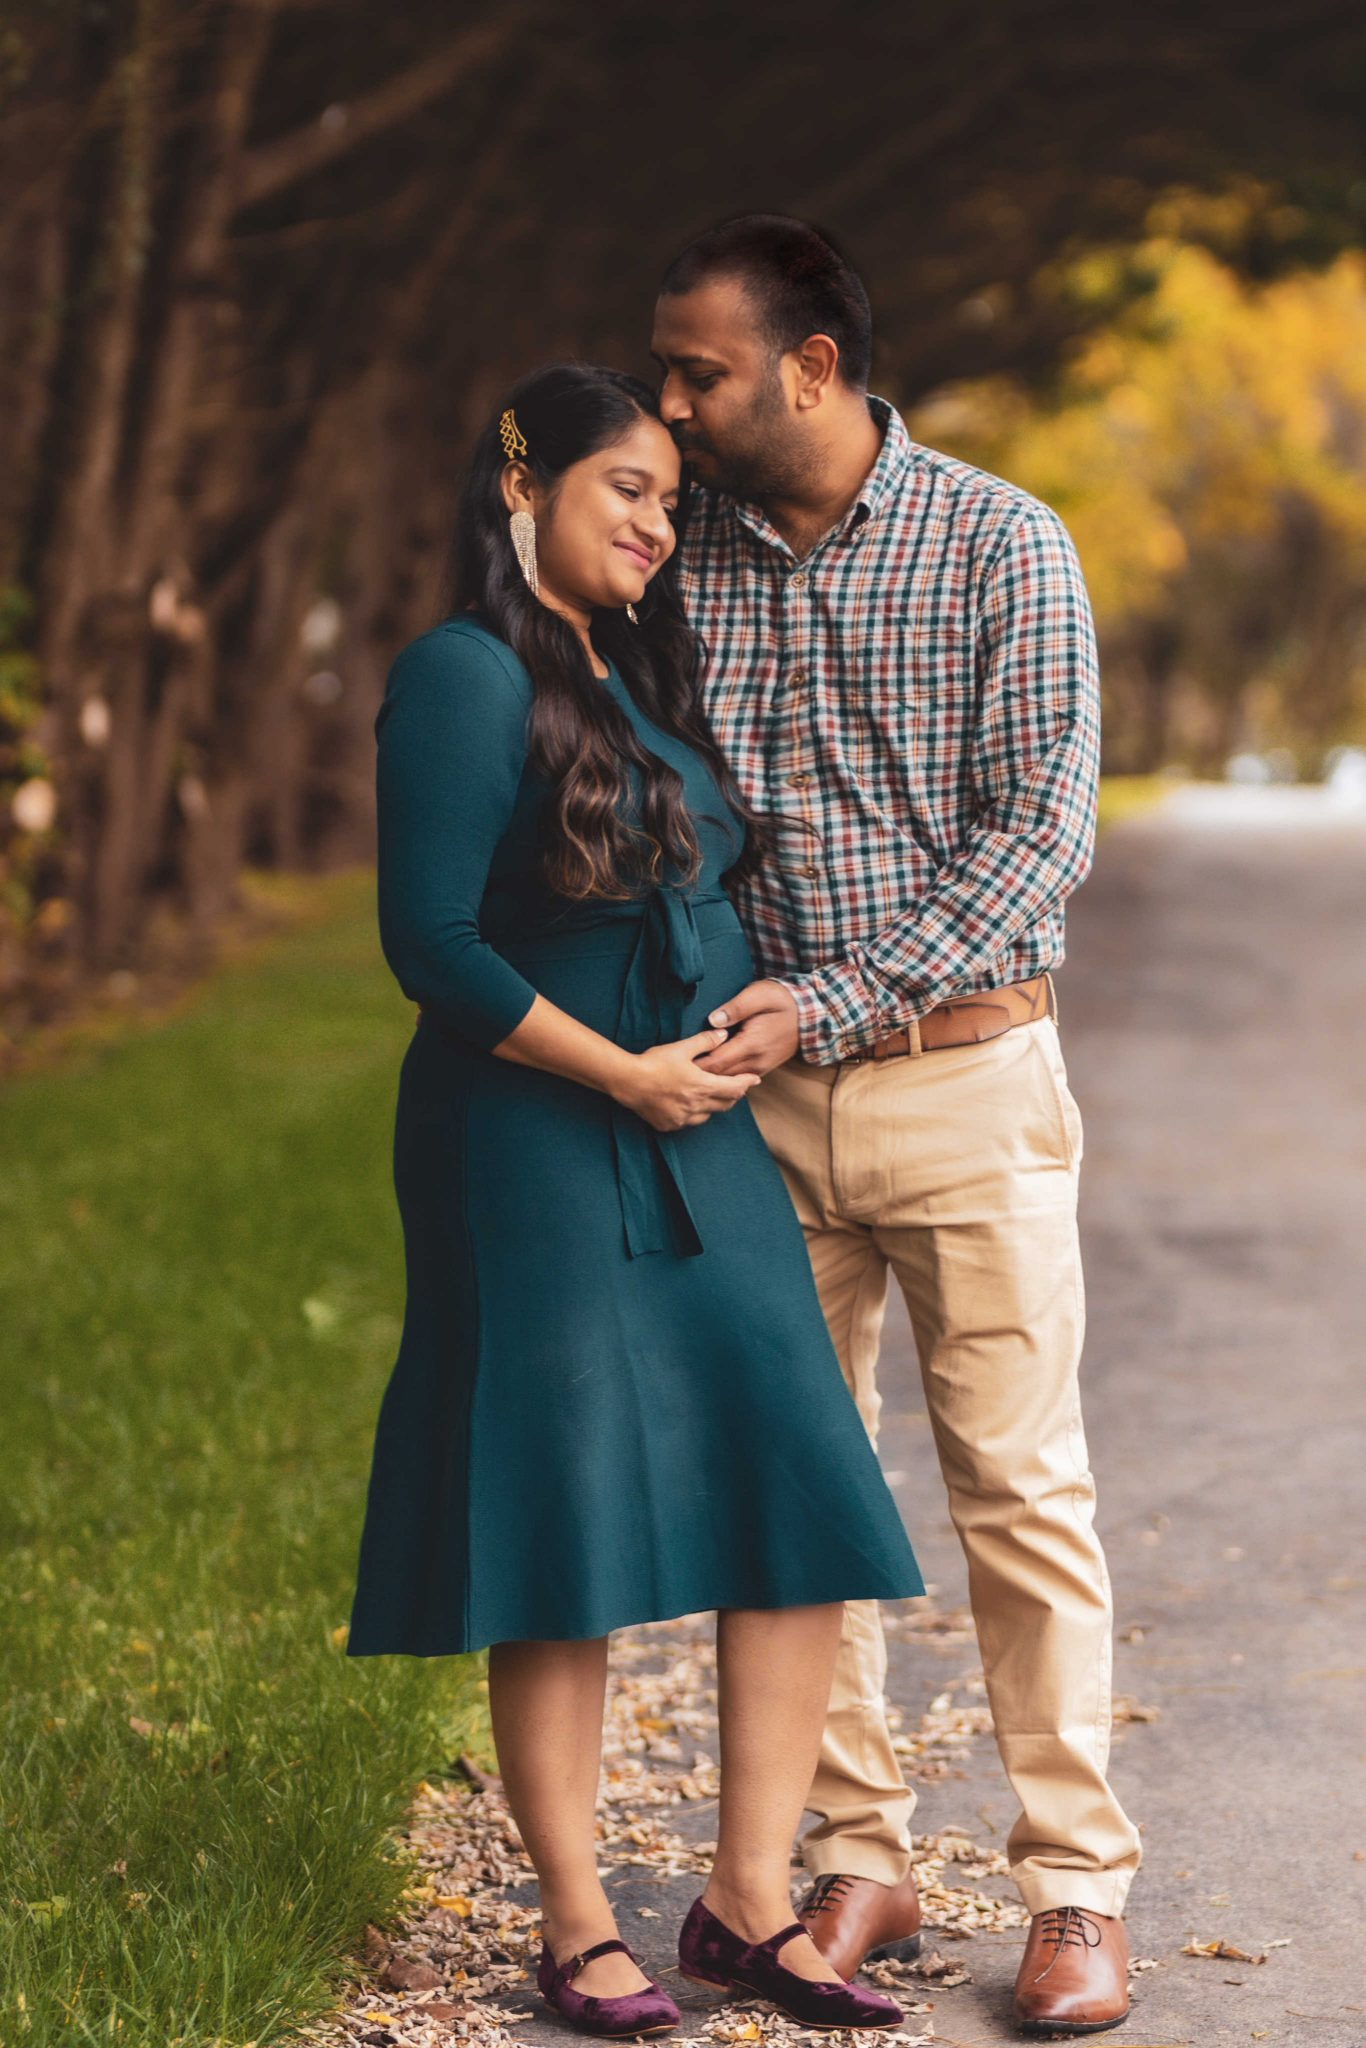 Fall Pregnancy Announcement by top Maryland life and style blogger, Dreaming Loud |Pregnancy Announcement by popular Maryland lifestyle blog, Dreaming Loud: image of a man wearing a blue and red plaid shirt and khaki pants and a pregnant woman wearing a blue maternity dress, statement earrings, and purple velvet shoes standing together outside under trees with yellow leaves.